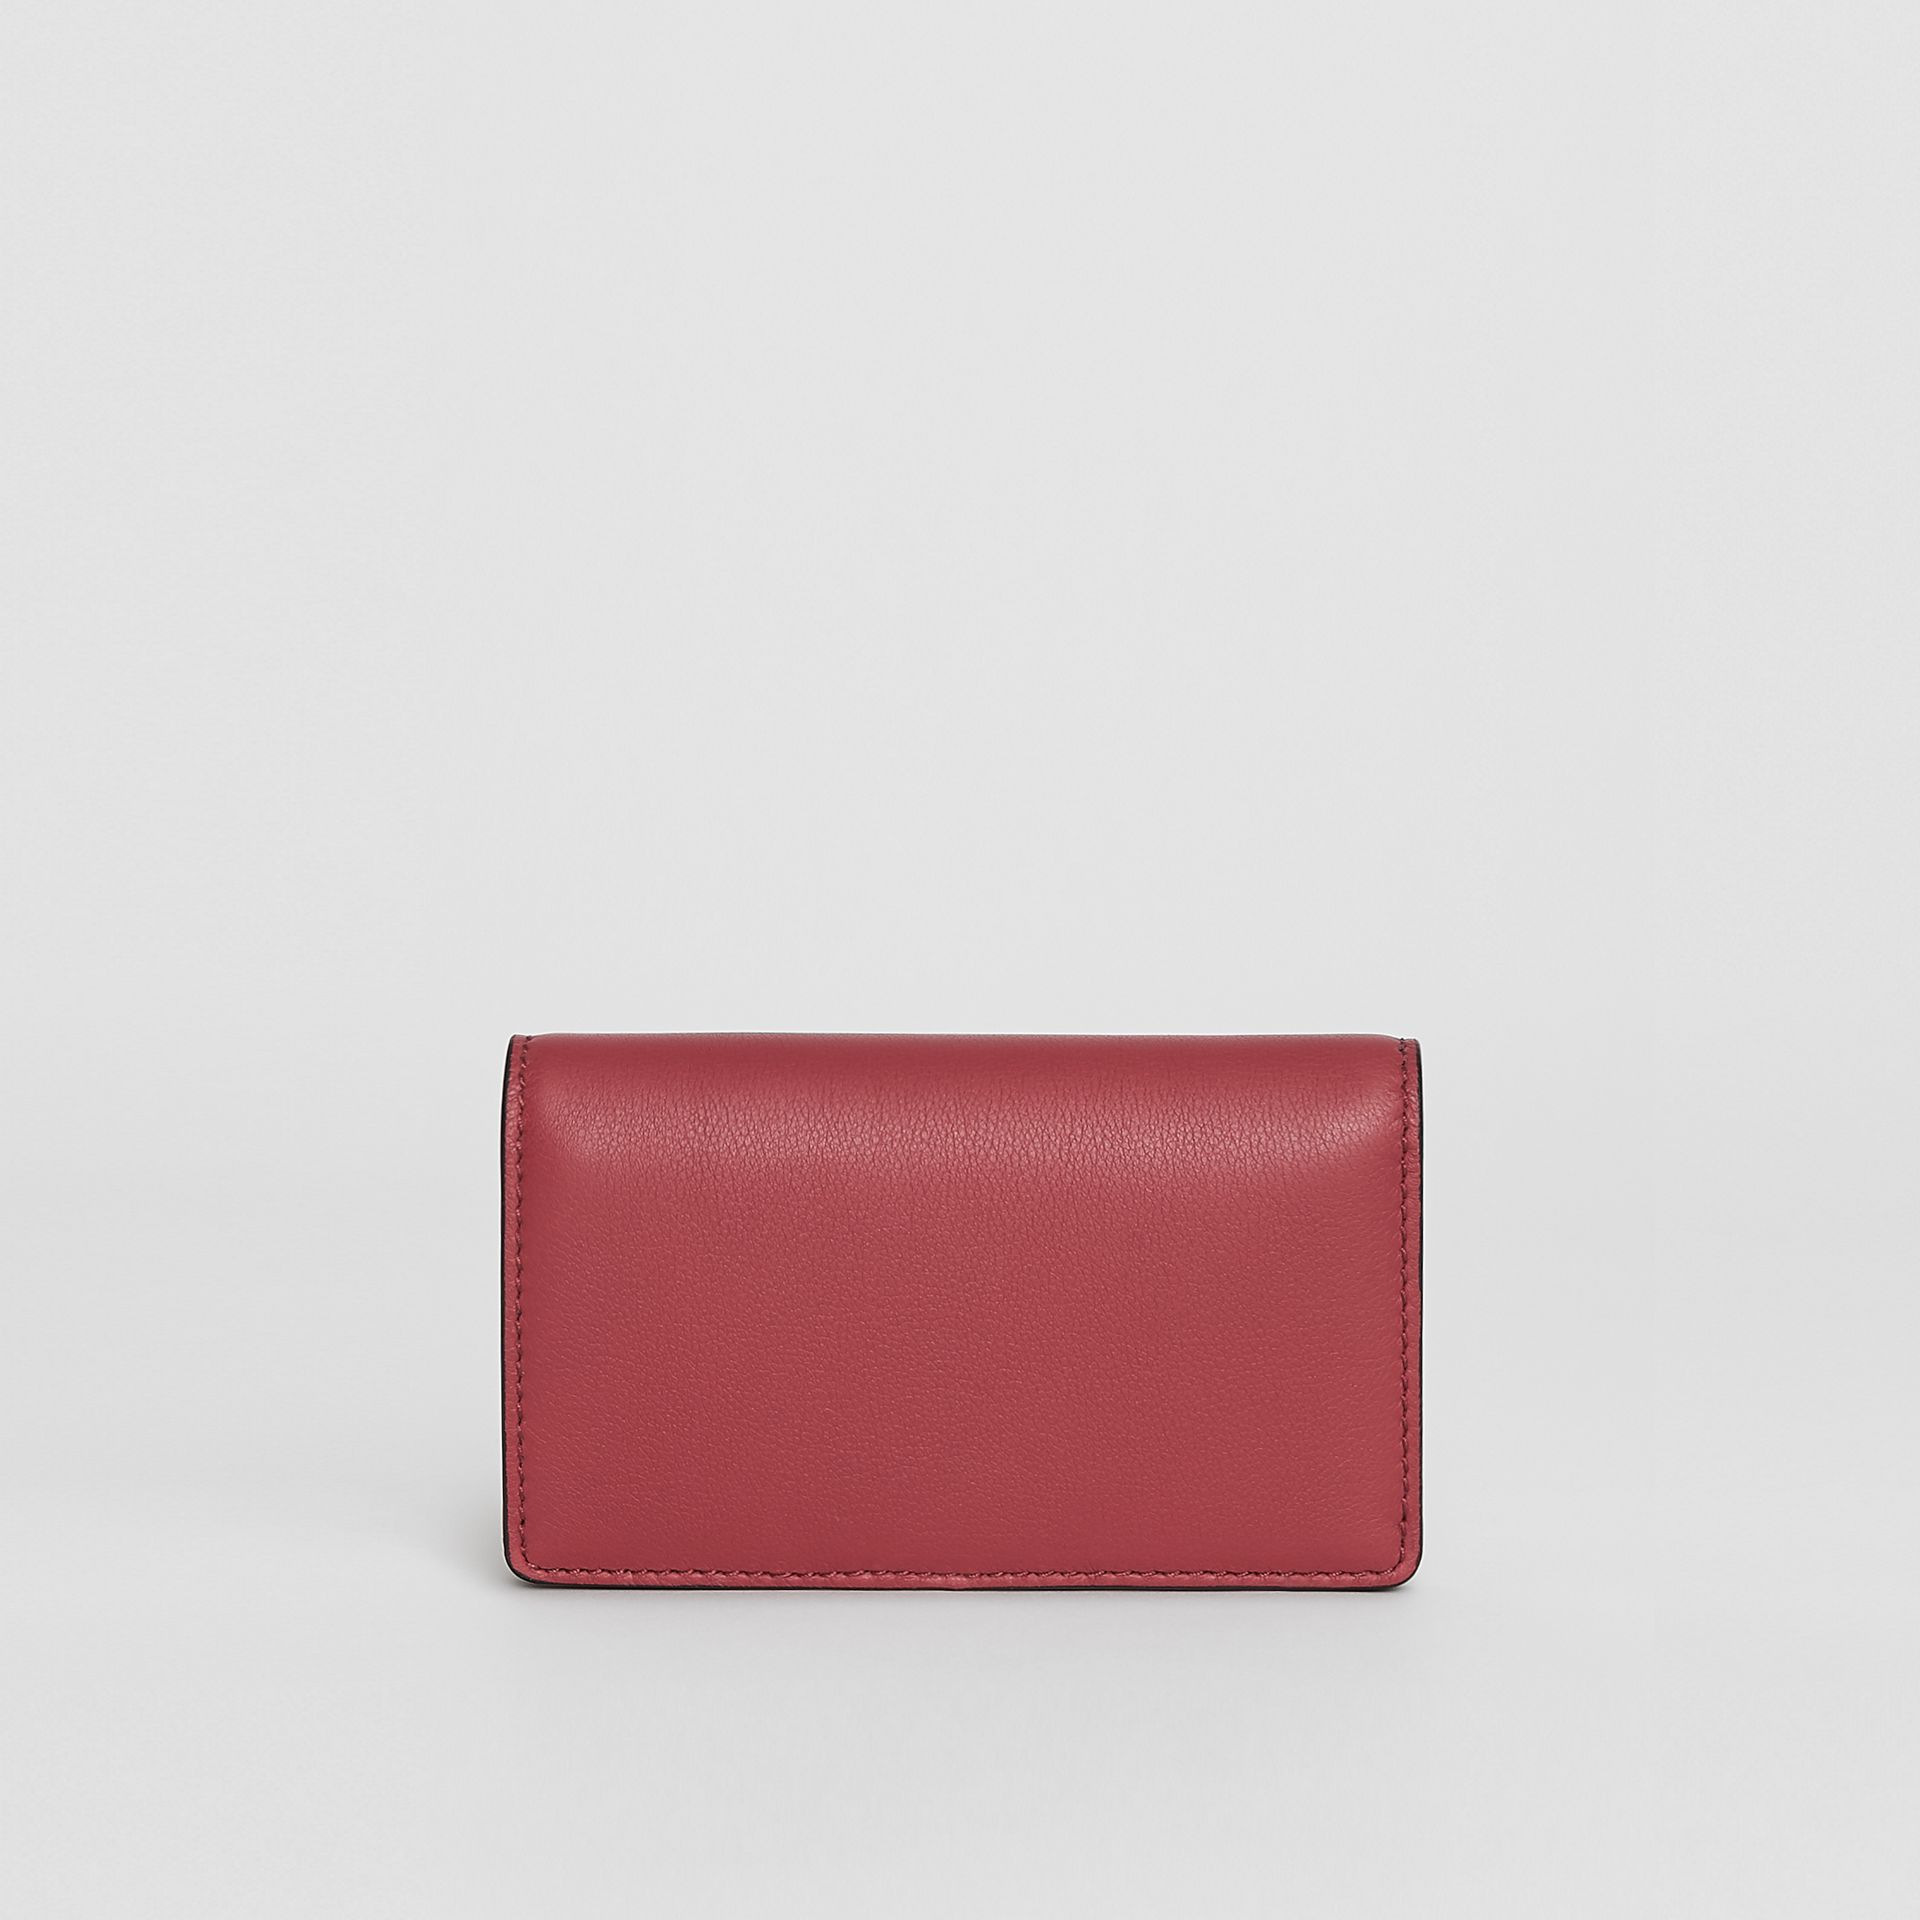 Small Embossed Crest Two-tone Leather Wallet in Crimson - Women | Burberry - gallery image 2